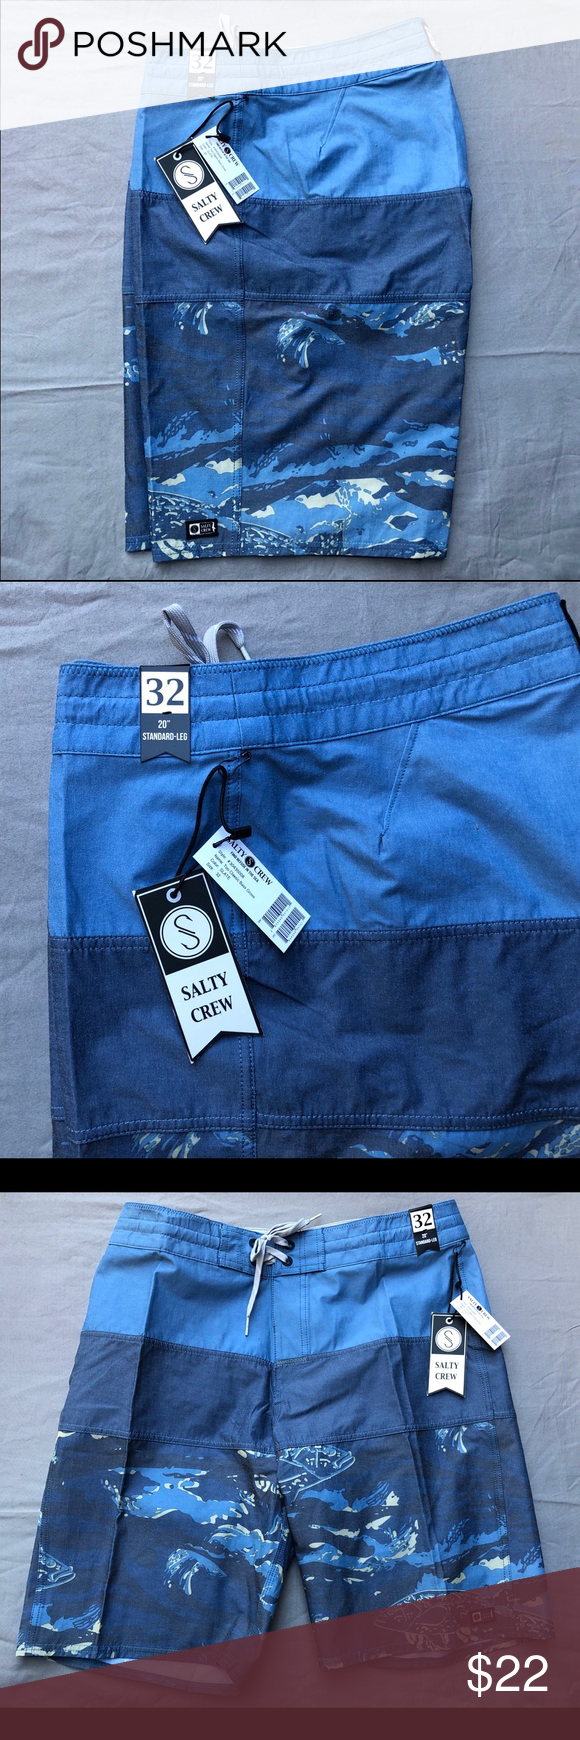 Salty Crew Men's Board Shorts size 32, New Salty Crew men's board shorts/bathing suit/surf trunks. These are new with the tags still on. Salty Cre Swim Board Shorts #mensbathingsuits Salty Crew Men's Board Shorts size 32, New Salty Crew men's board shorts/bathing suit/surf trunks. These are new with the tags still on. Salty Cre Swim Board Shorts #mensbathingsuits